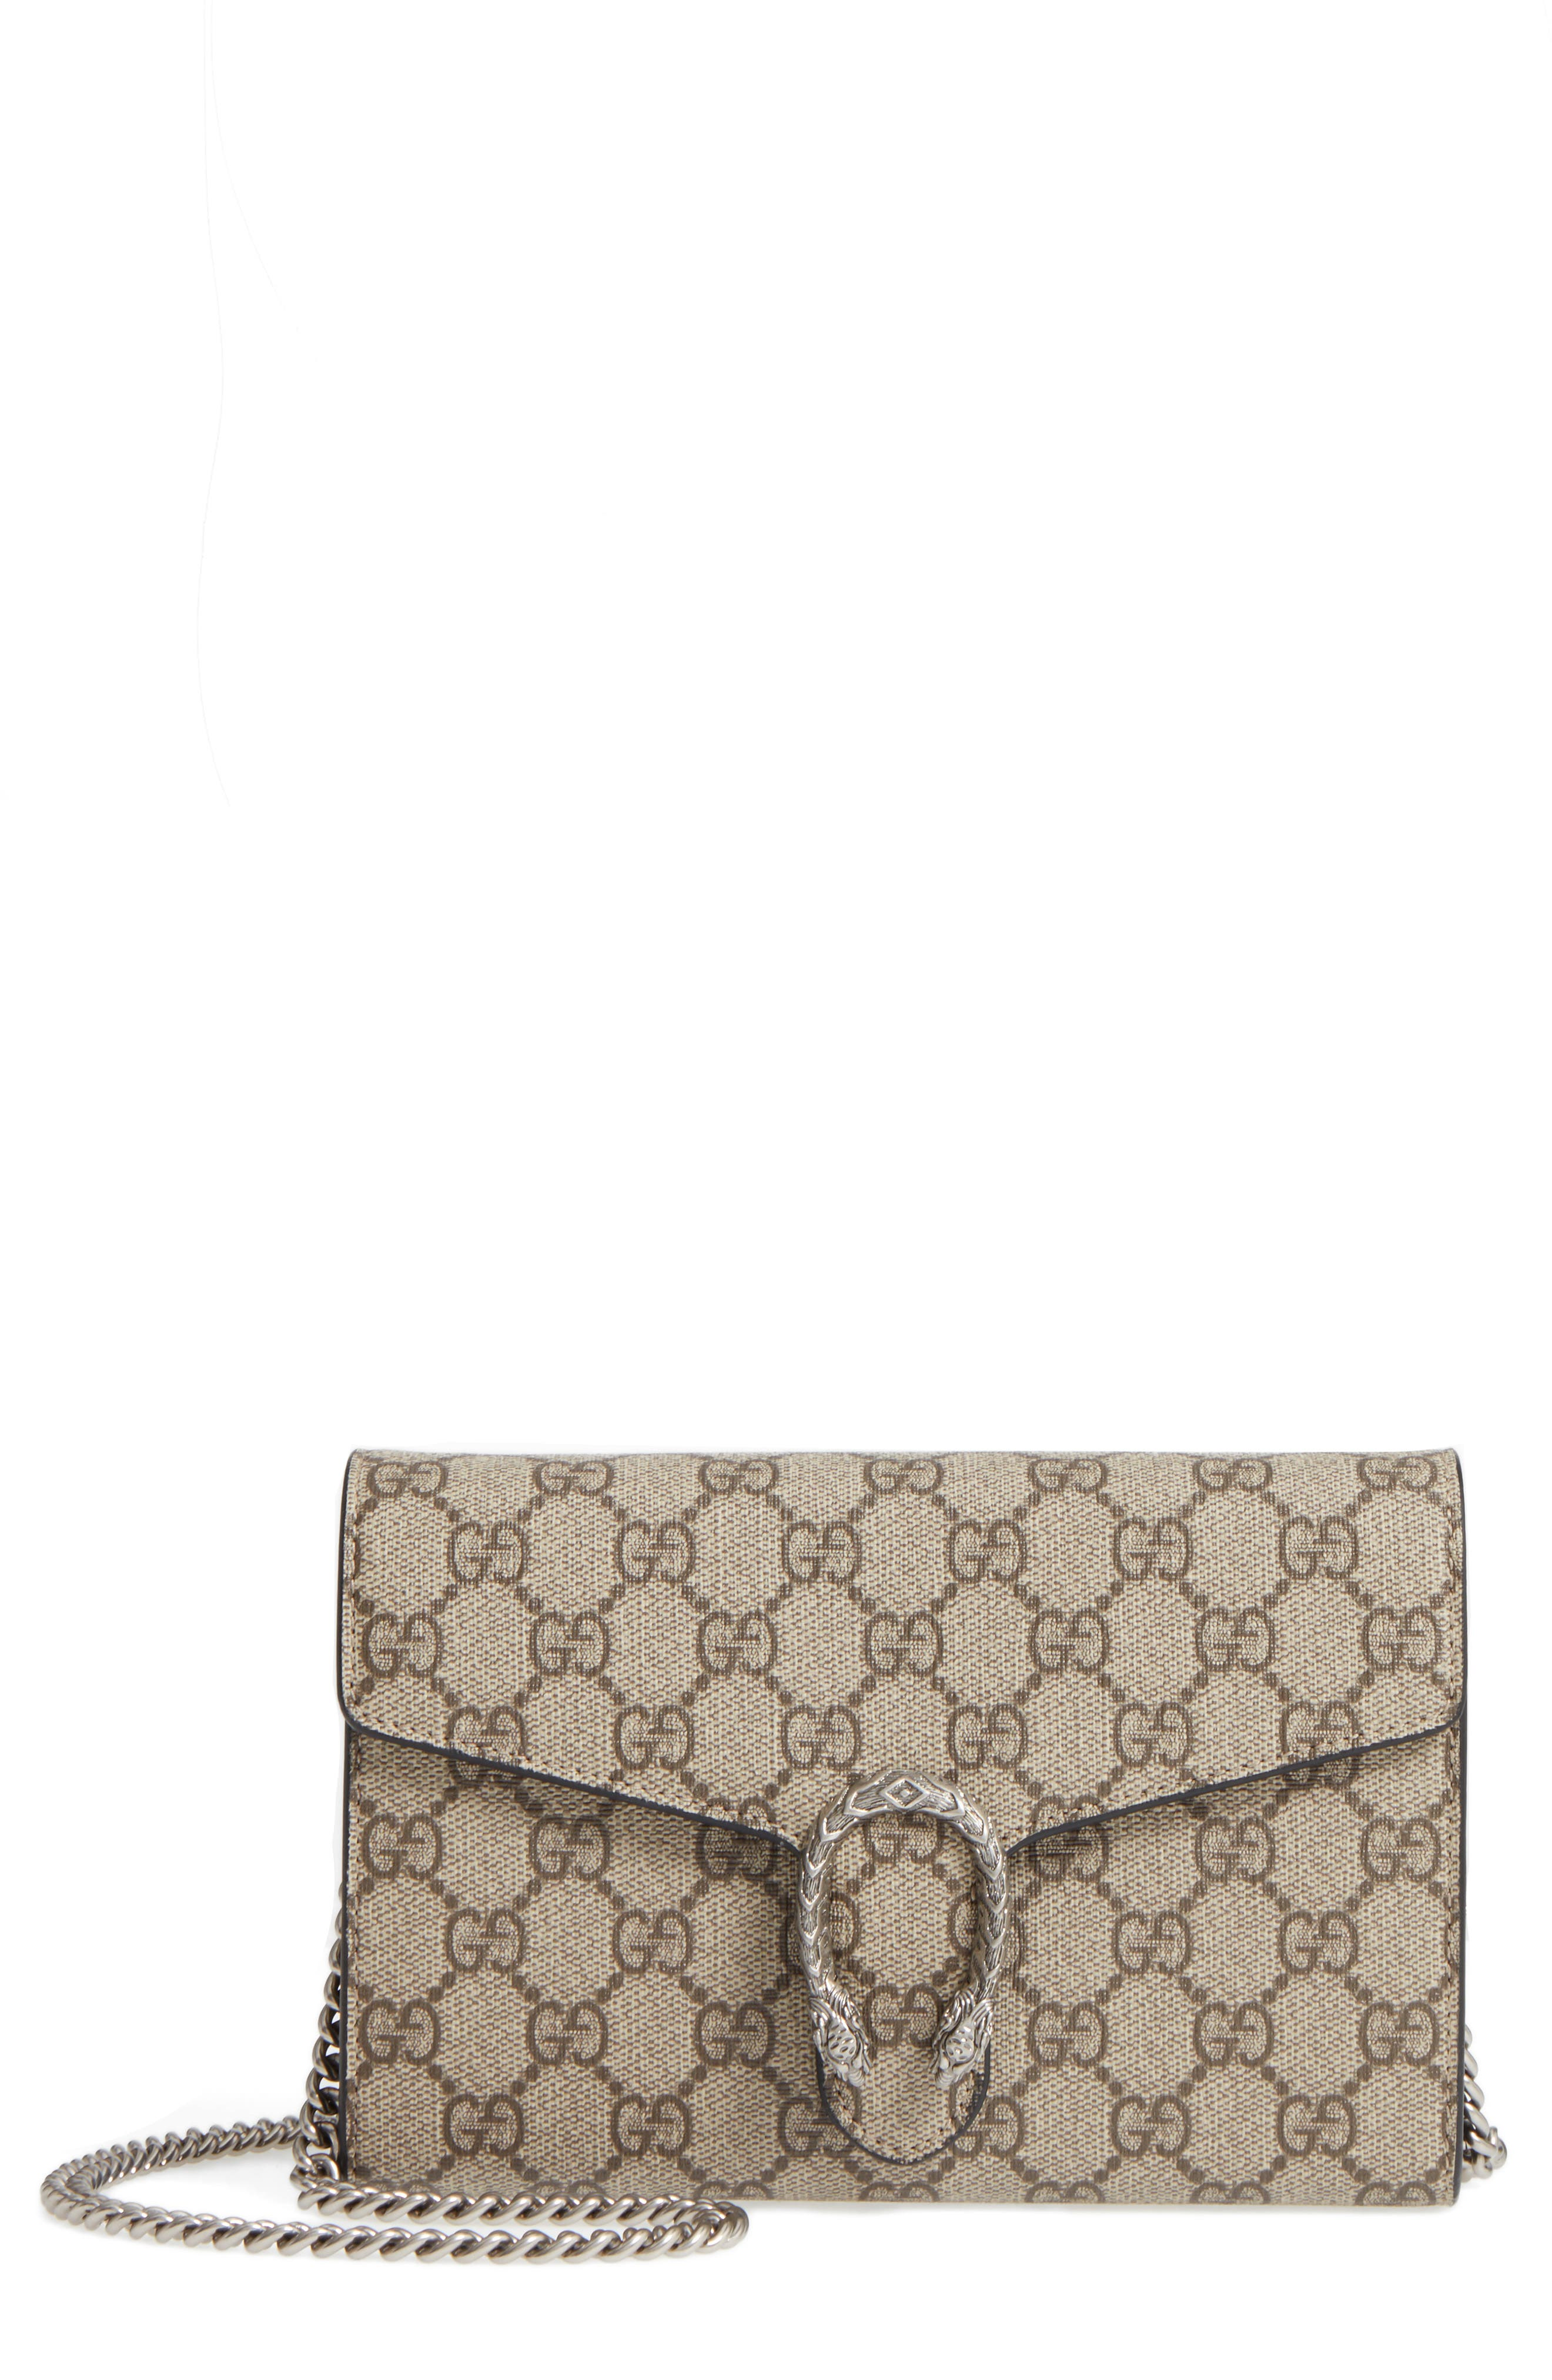 GUCCI, Dionysus GG Supreme Canvas Wallet on a Chain, Main thumbnail 1, color, BEIGE EBONY/NERO